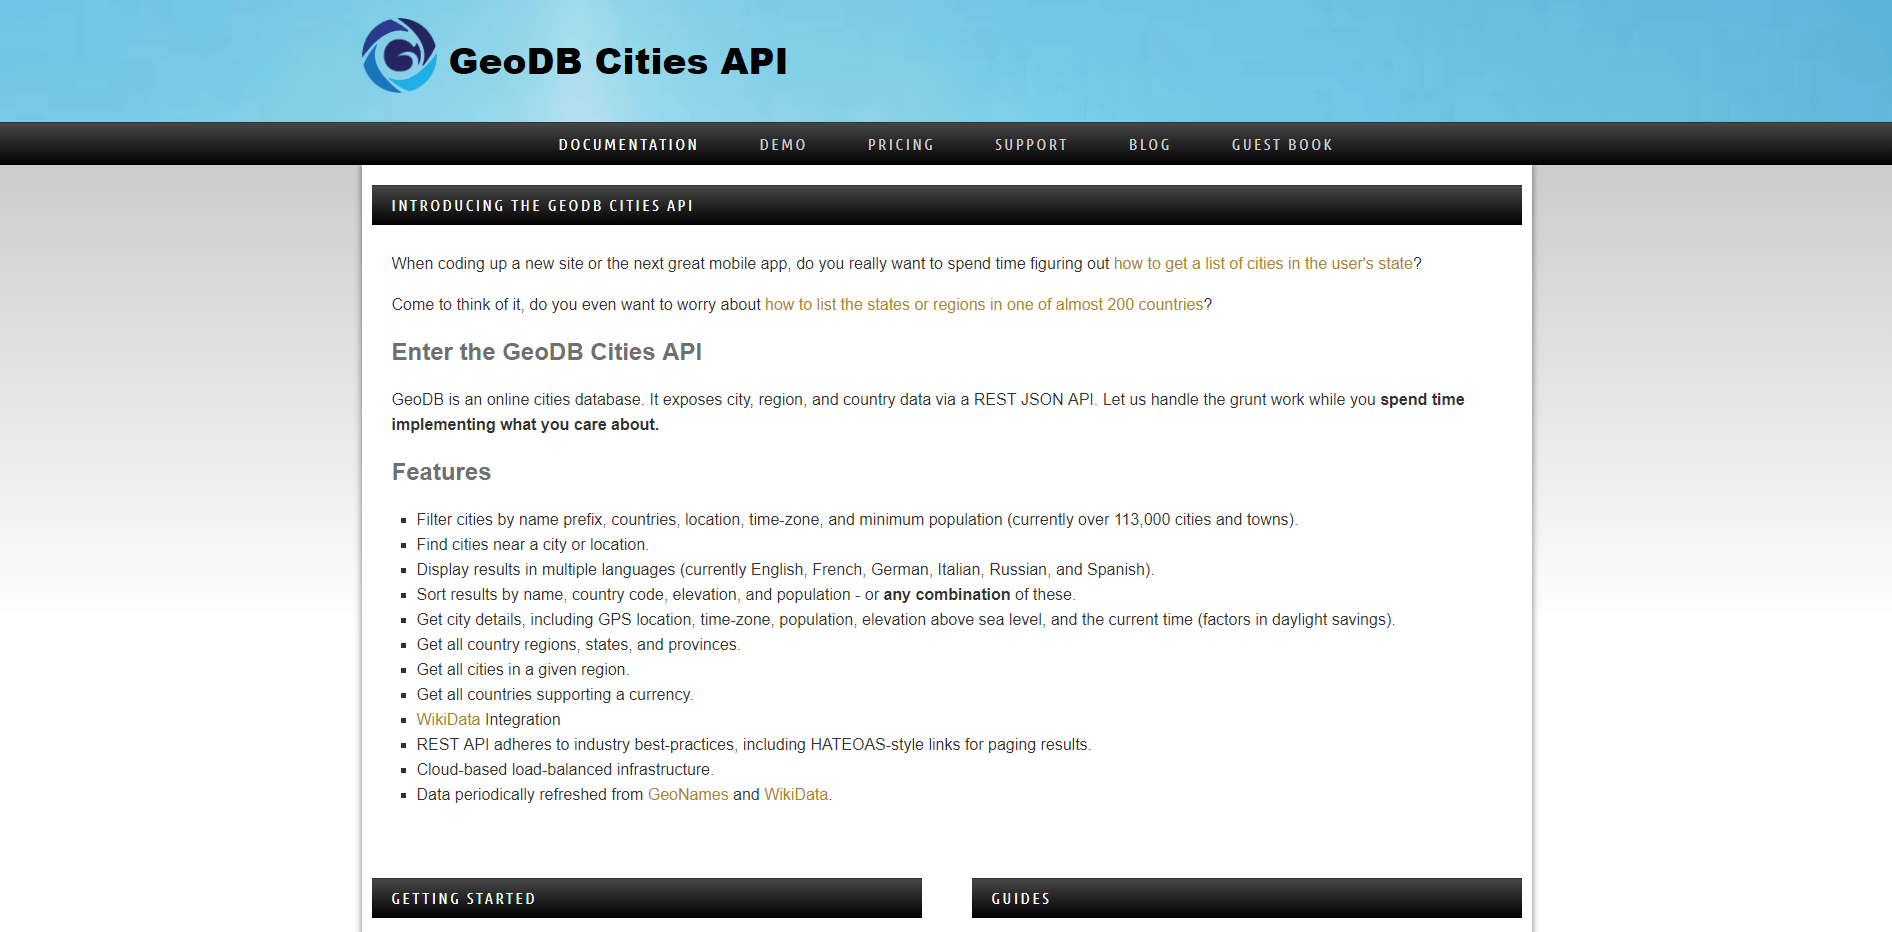 geoDB cities API on RapidAPI